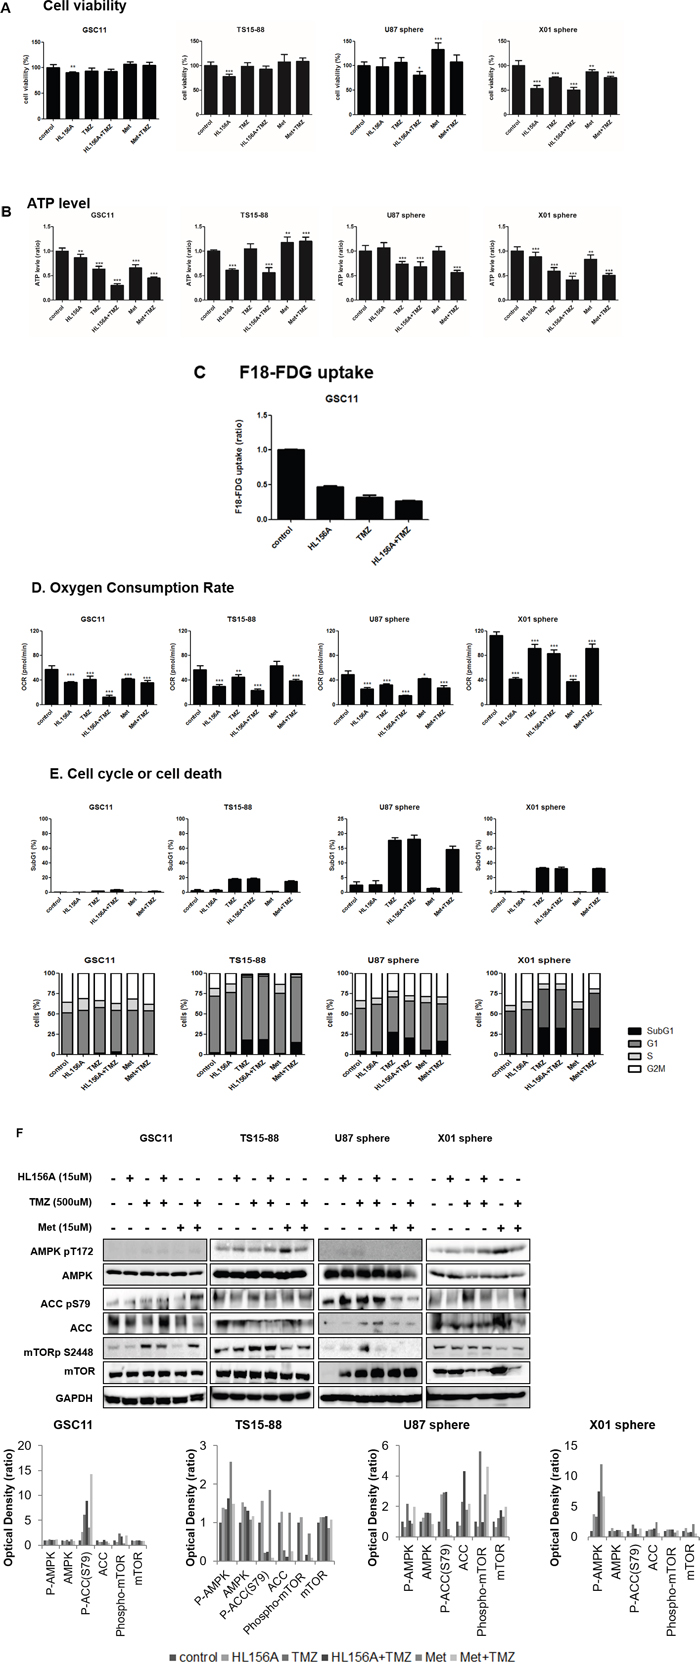 Effects of HL156A, TMZ, and combination treatment on cell viability.